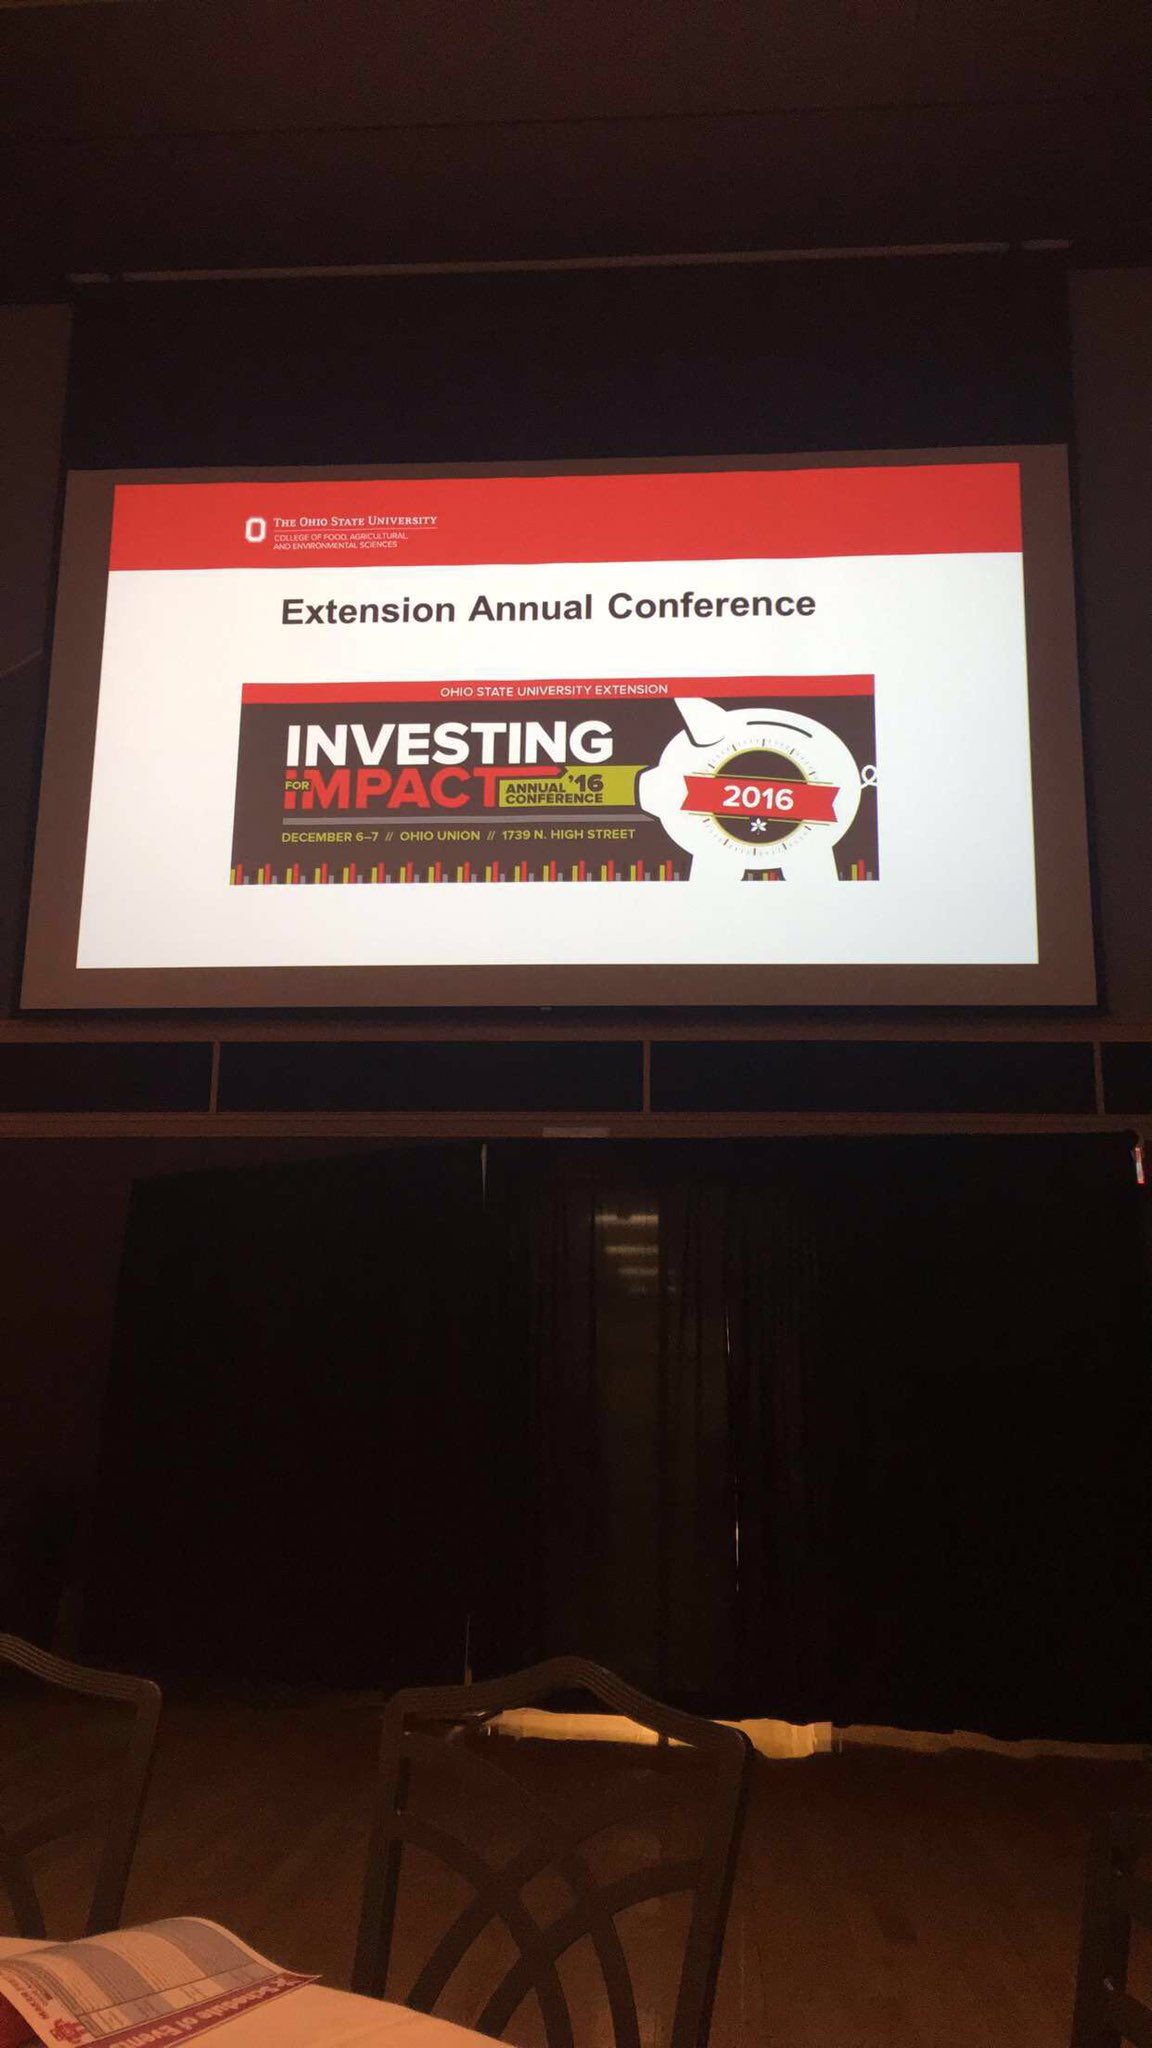 Ready to Invest for Impact! #osue2016 https://t.co/bhHeAyaV2b